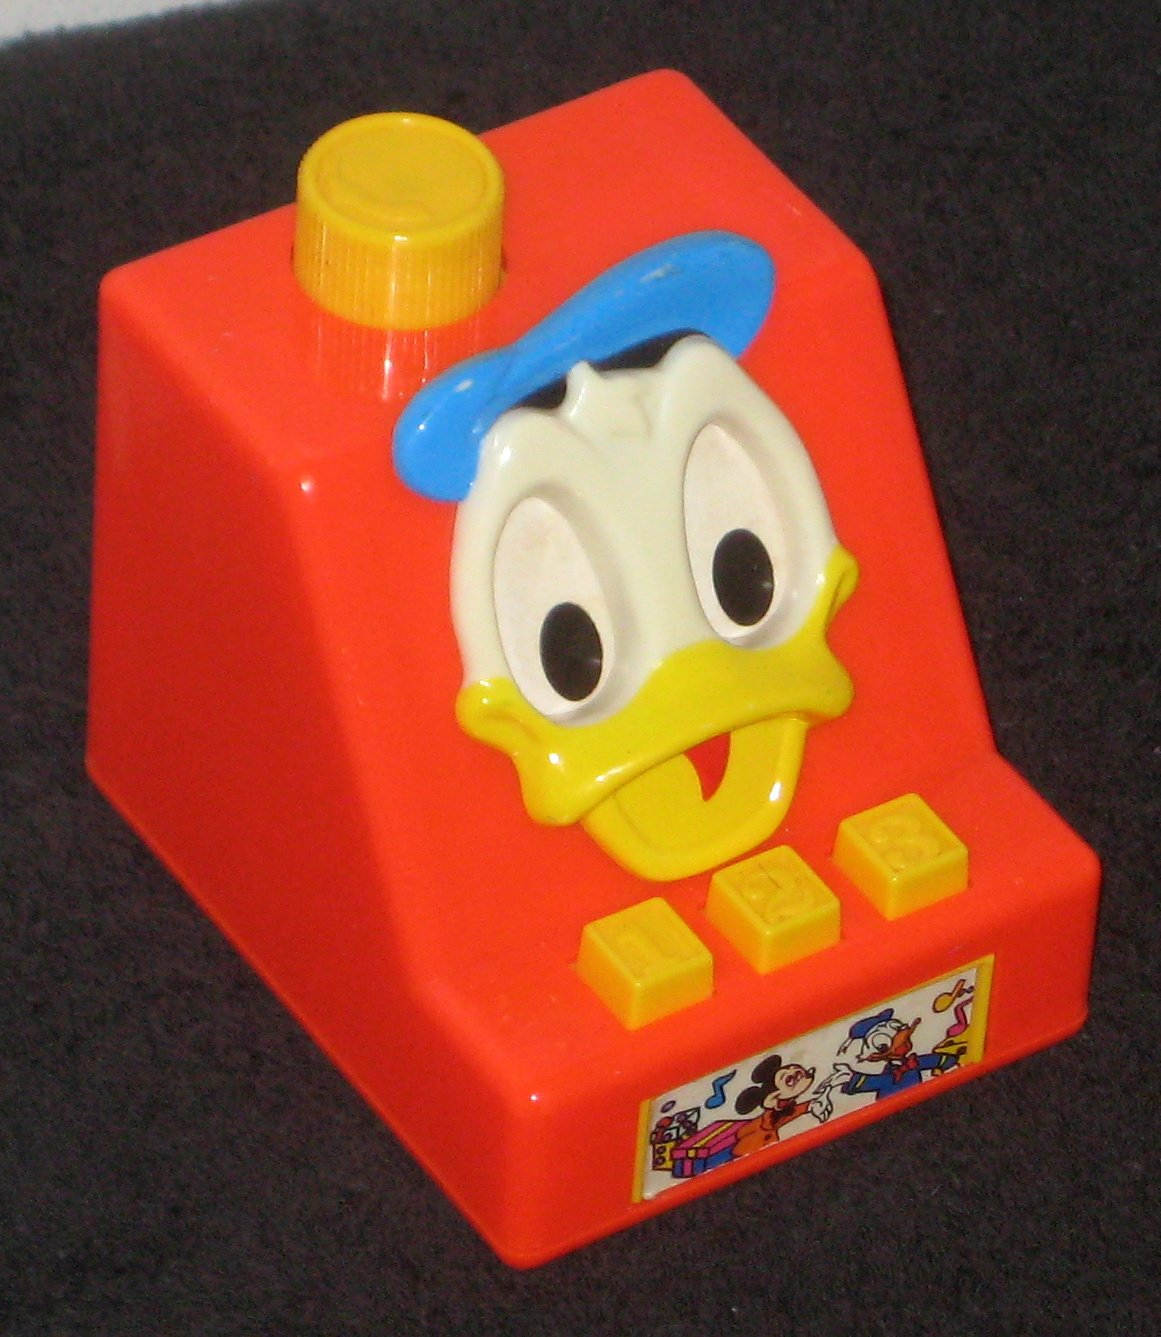 Donald Duck Illco Wind-Up Musical Cash Register 1980 Music Box Disney Working Plays Frère Jacques